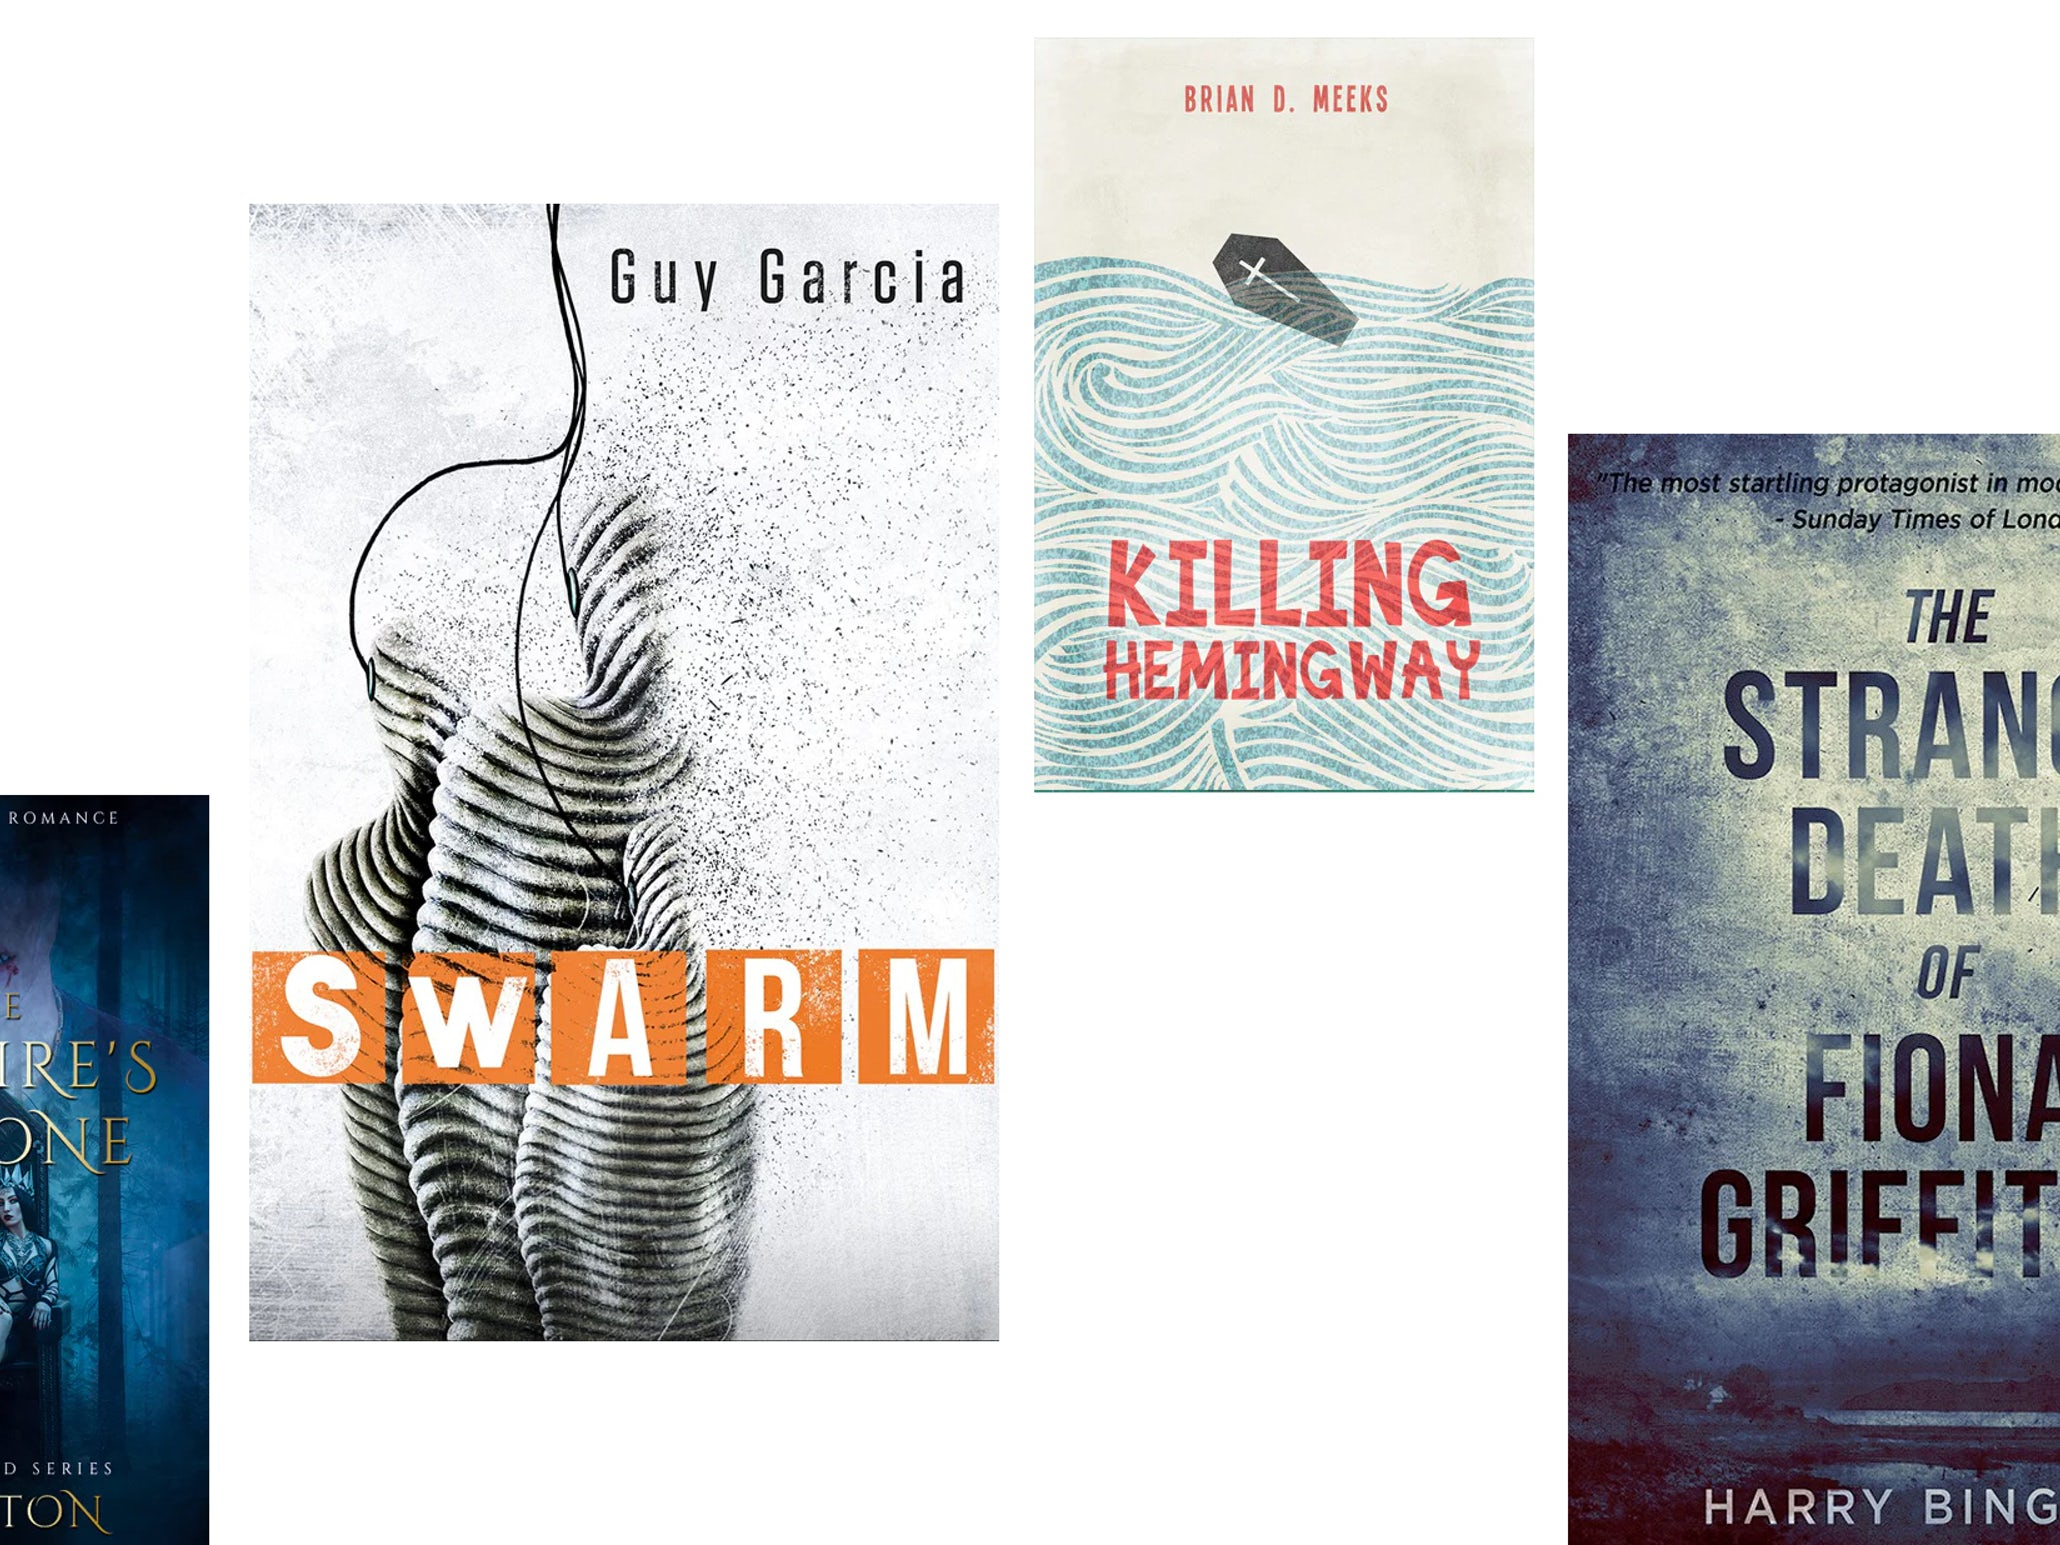 How to design book covers for any genre - 99designs